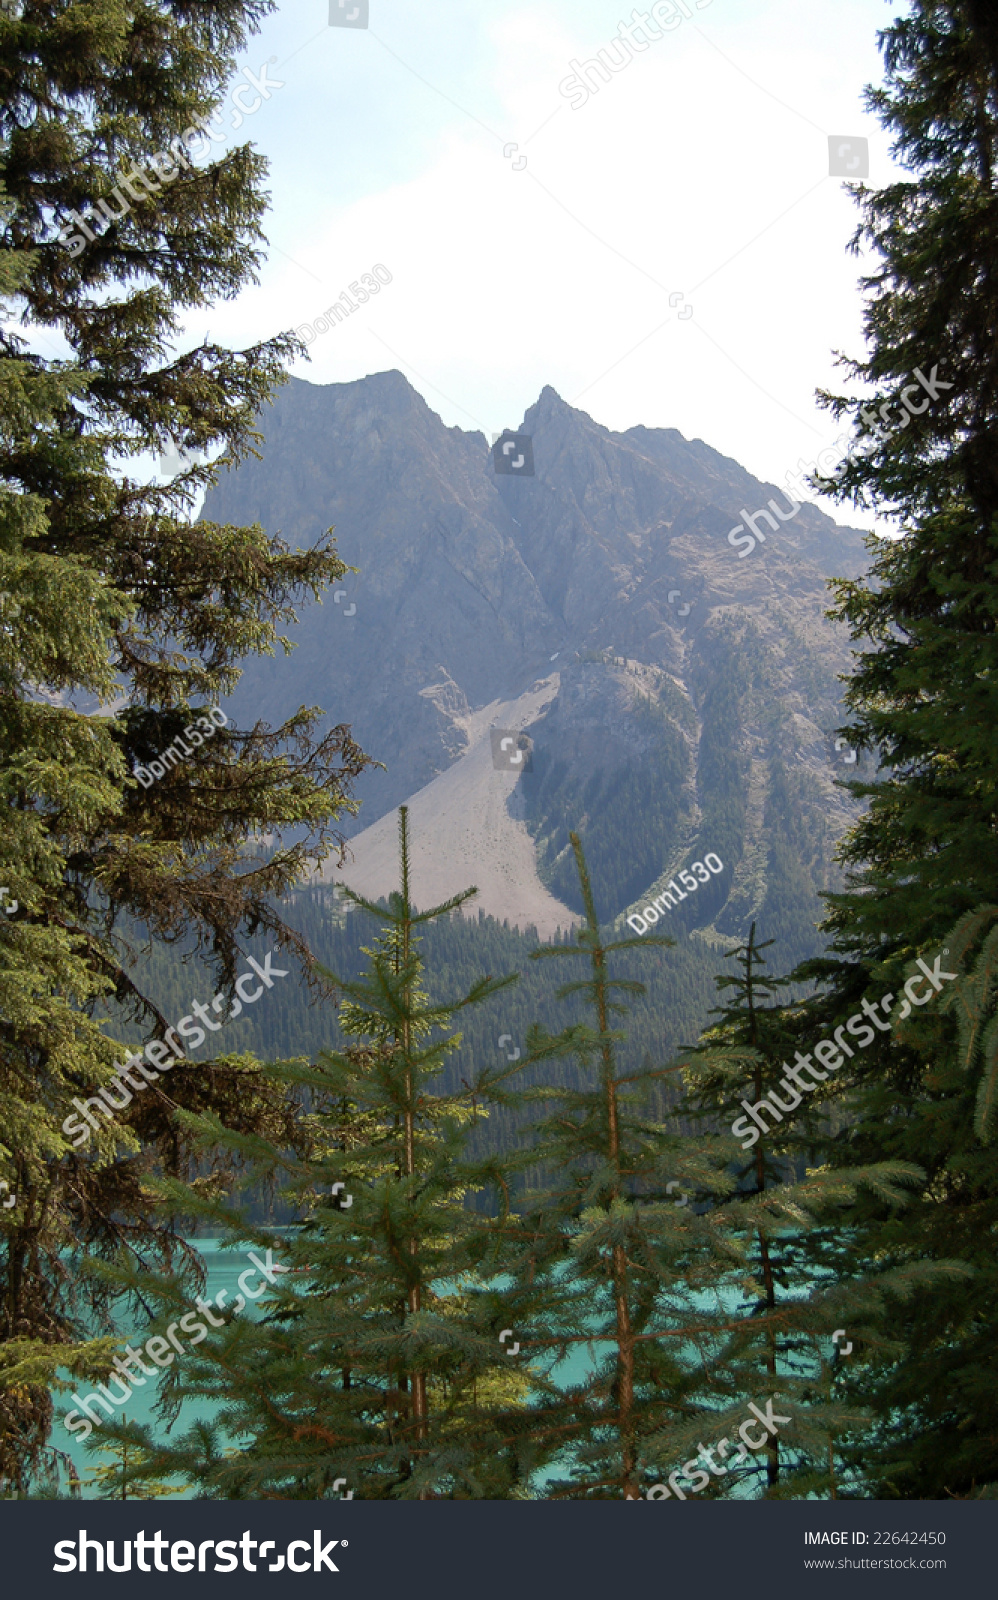 Lake Views Between The Trees In Canada Stock Photo